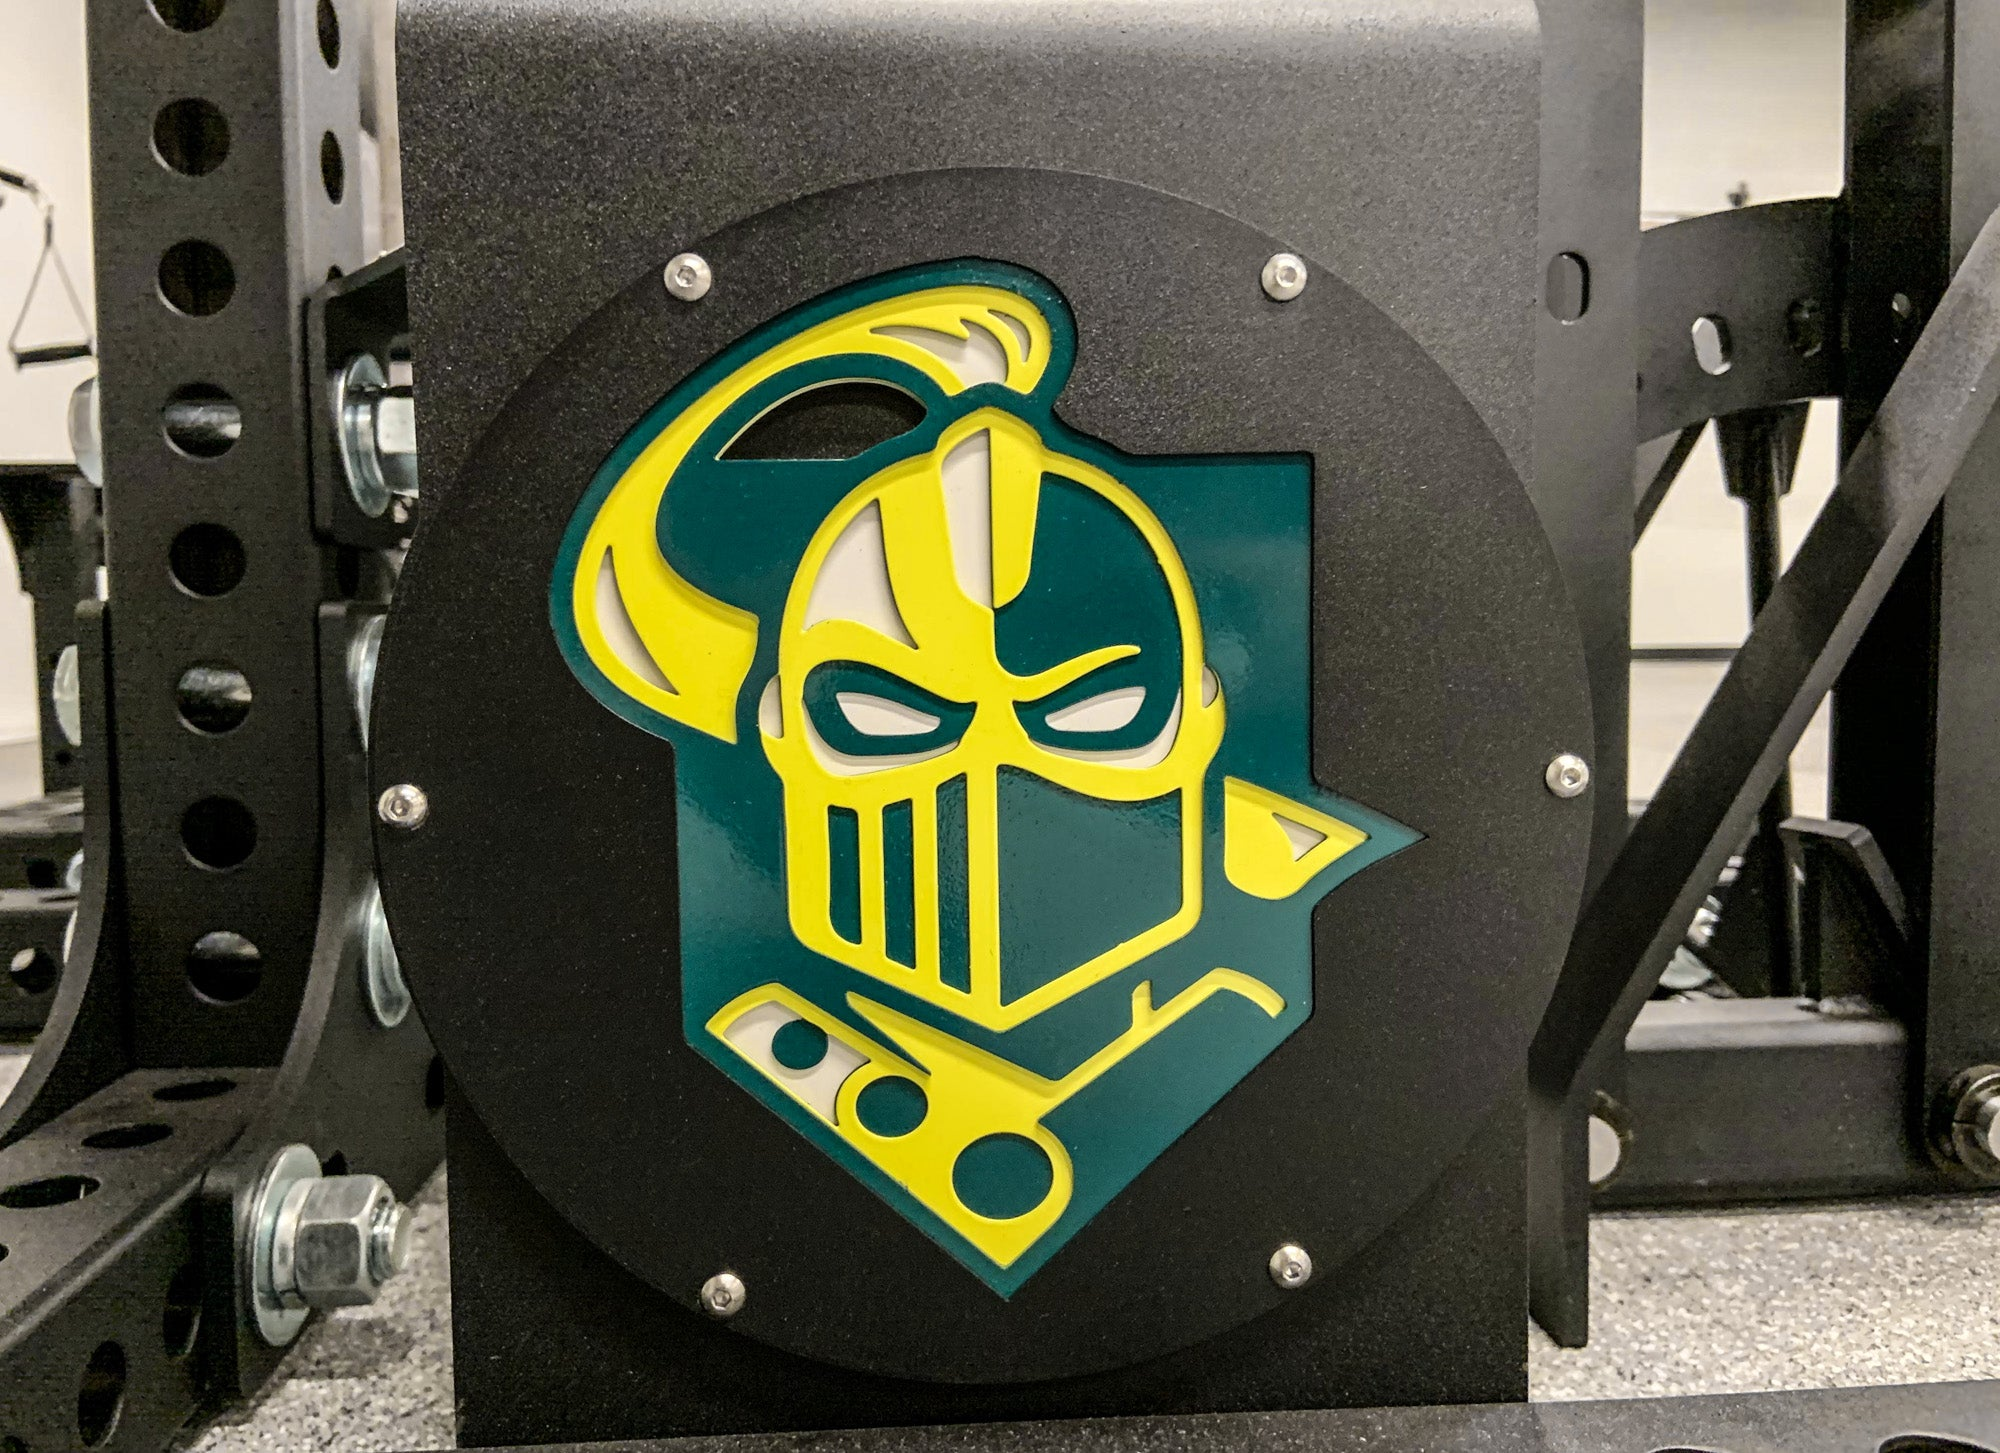 Clarkson University Athletics